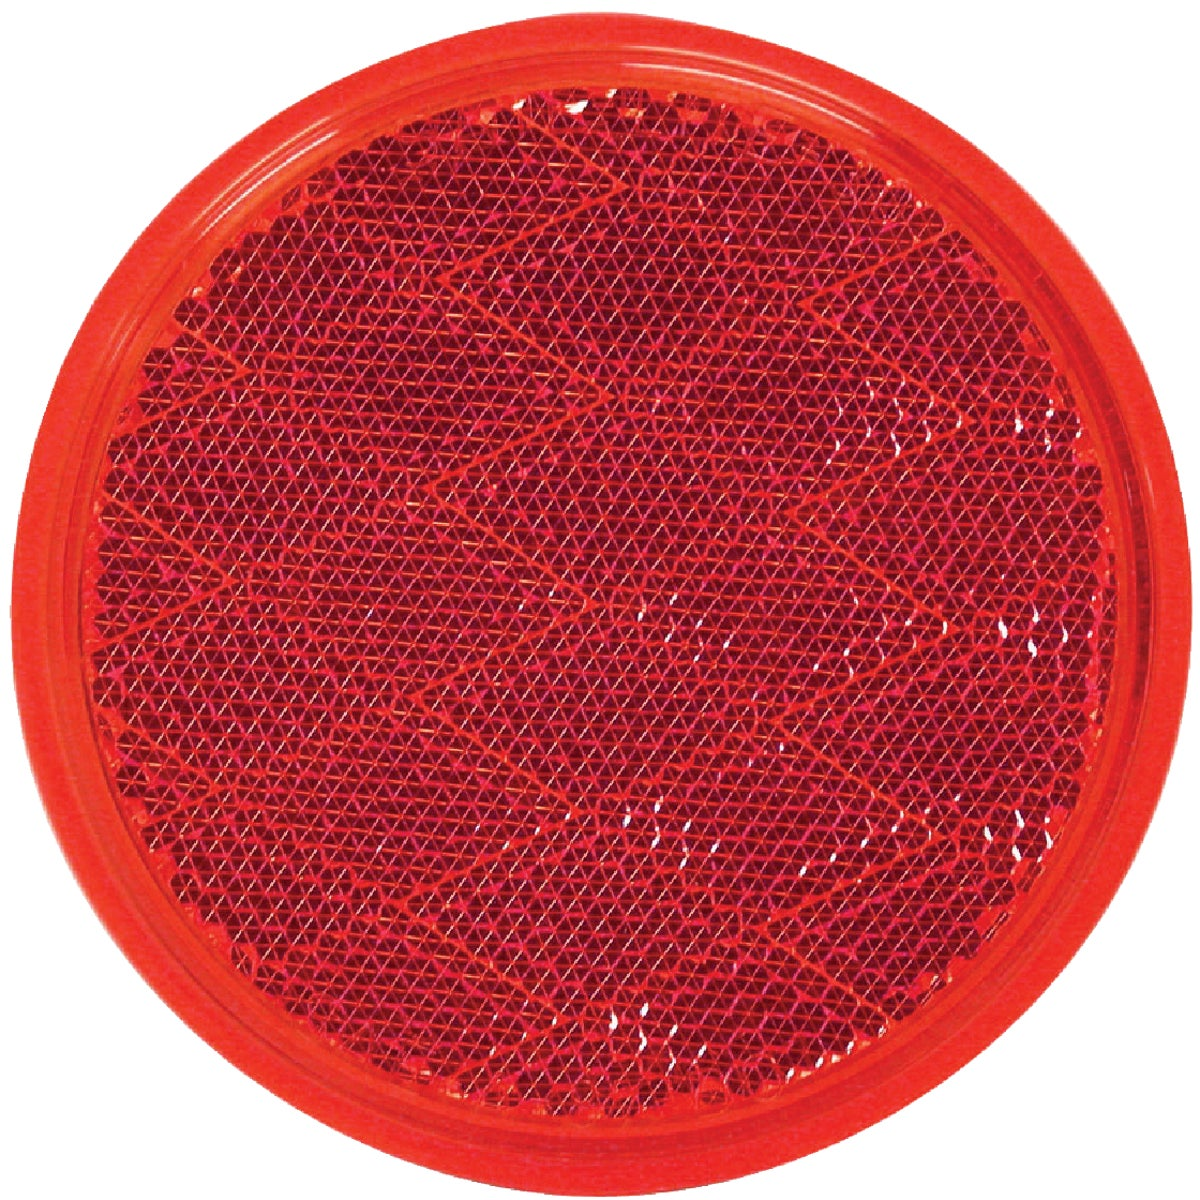 RED ROUND REFLECTOR - V475R by Peterson Mfg Co